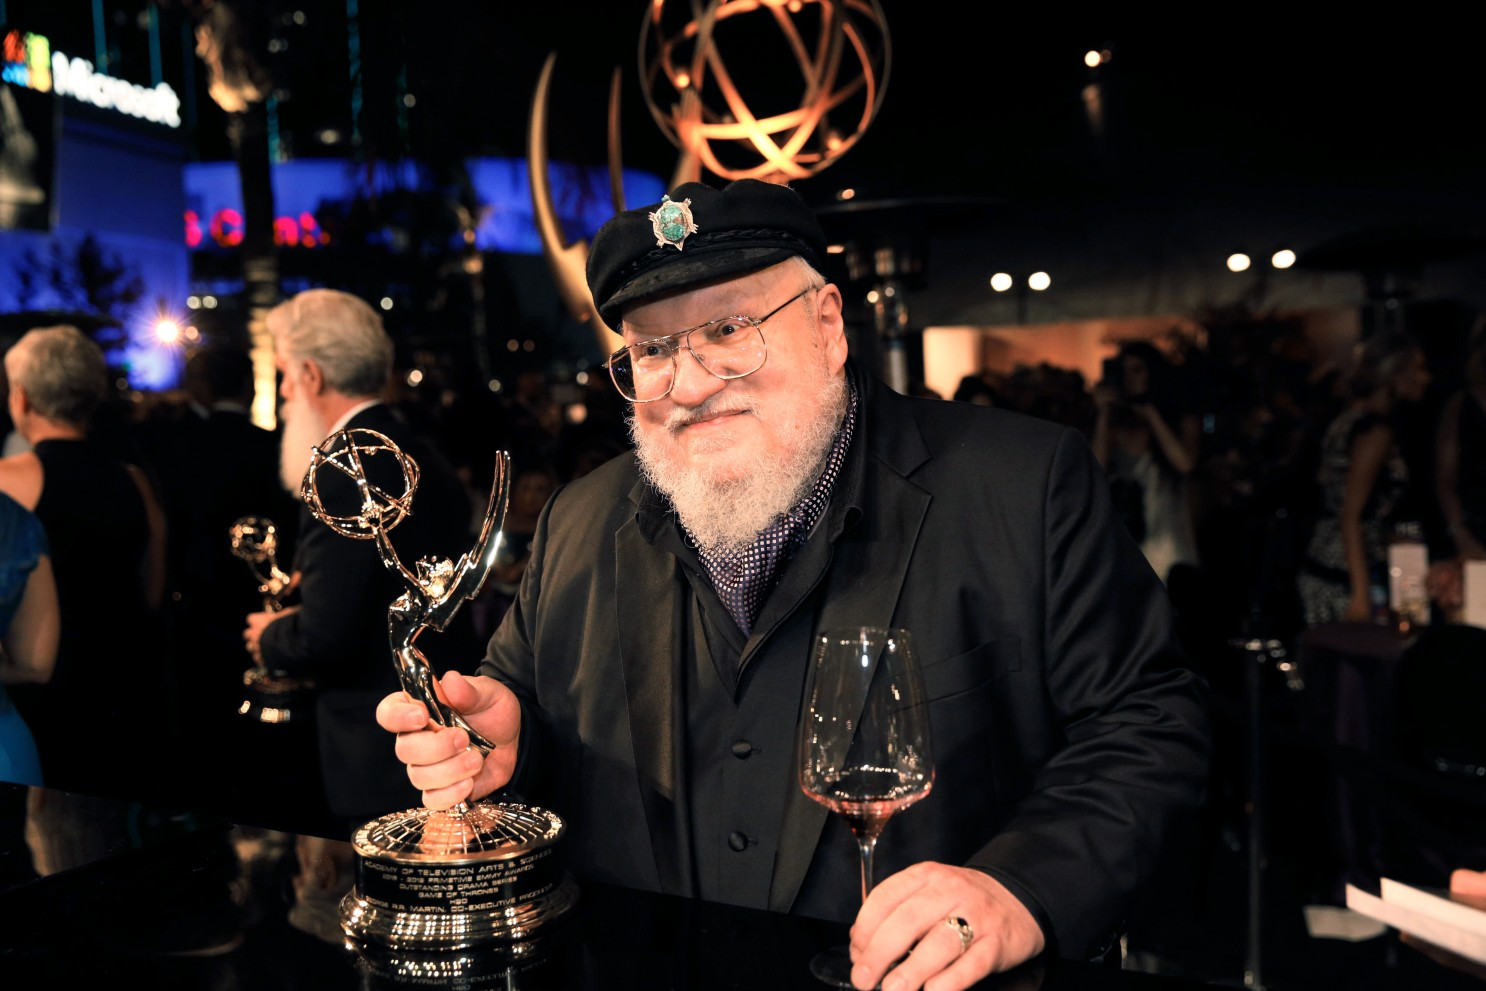 , When Will George R.R Martin Release Games Of Thrones Winds Of Winter Novel?